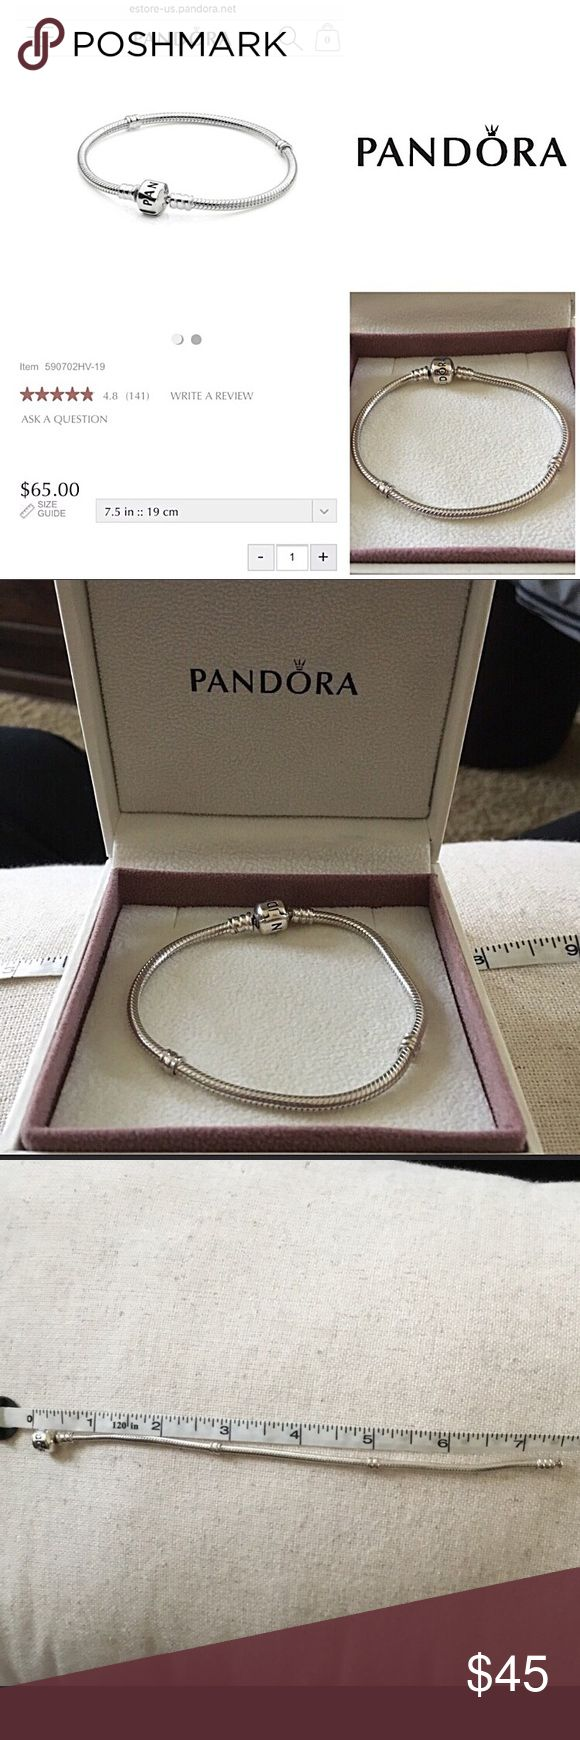 Pandora Bracelet + BOX  100% Authentic Iconic BUNDLE DISCOUNT ONLY   Authentic Pandora Iconic Barrel Clasp Bracelet INCLUDES Bracelet Box  Purchased at our Pandora store  Authentic and genuine The clasp is nice and tight-it was rarely worn  Sold individually- NO charms/props included   1st photo contains images from the web for information   All charms sold separately - all pouches, boxes ect not included  Smoke Free Home Hypoallergenic Pet Friendly-We Have a Morkie   I Videotape Sales as I…